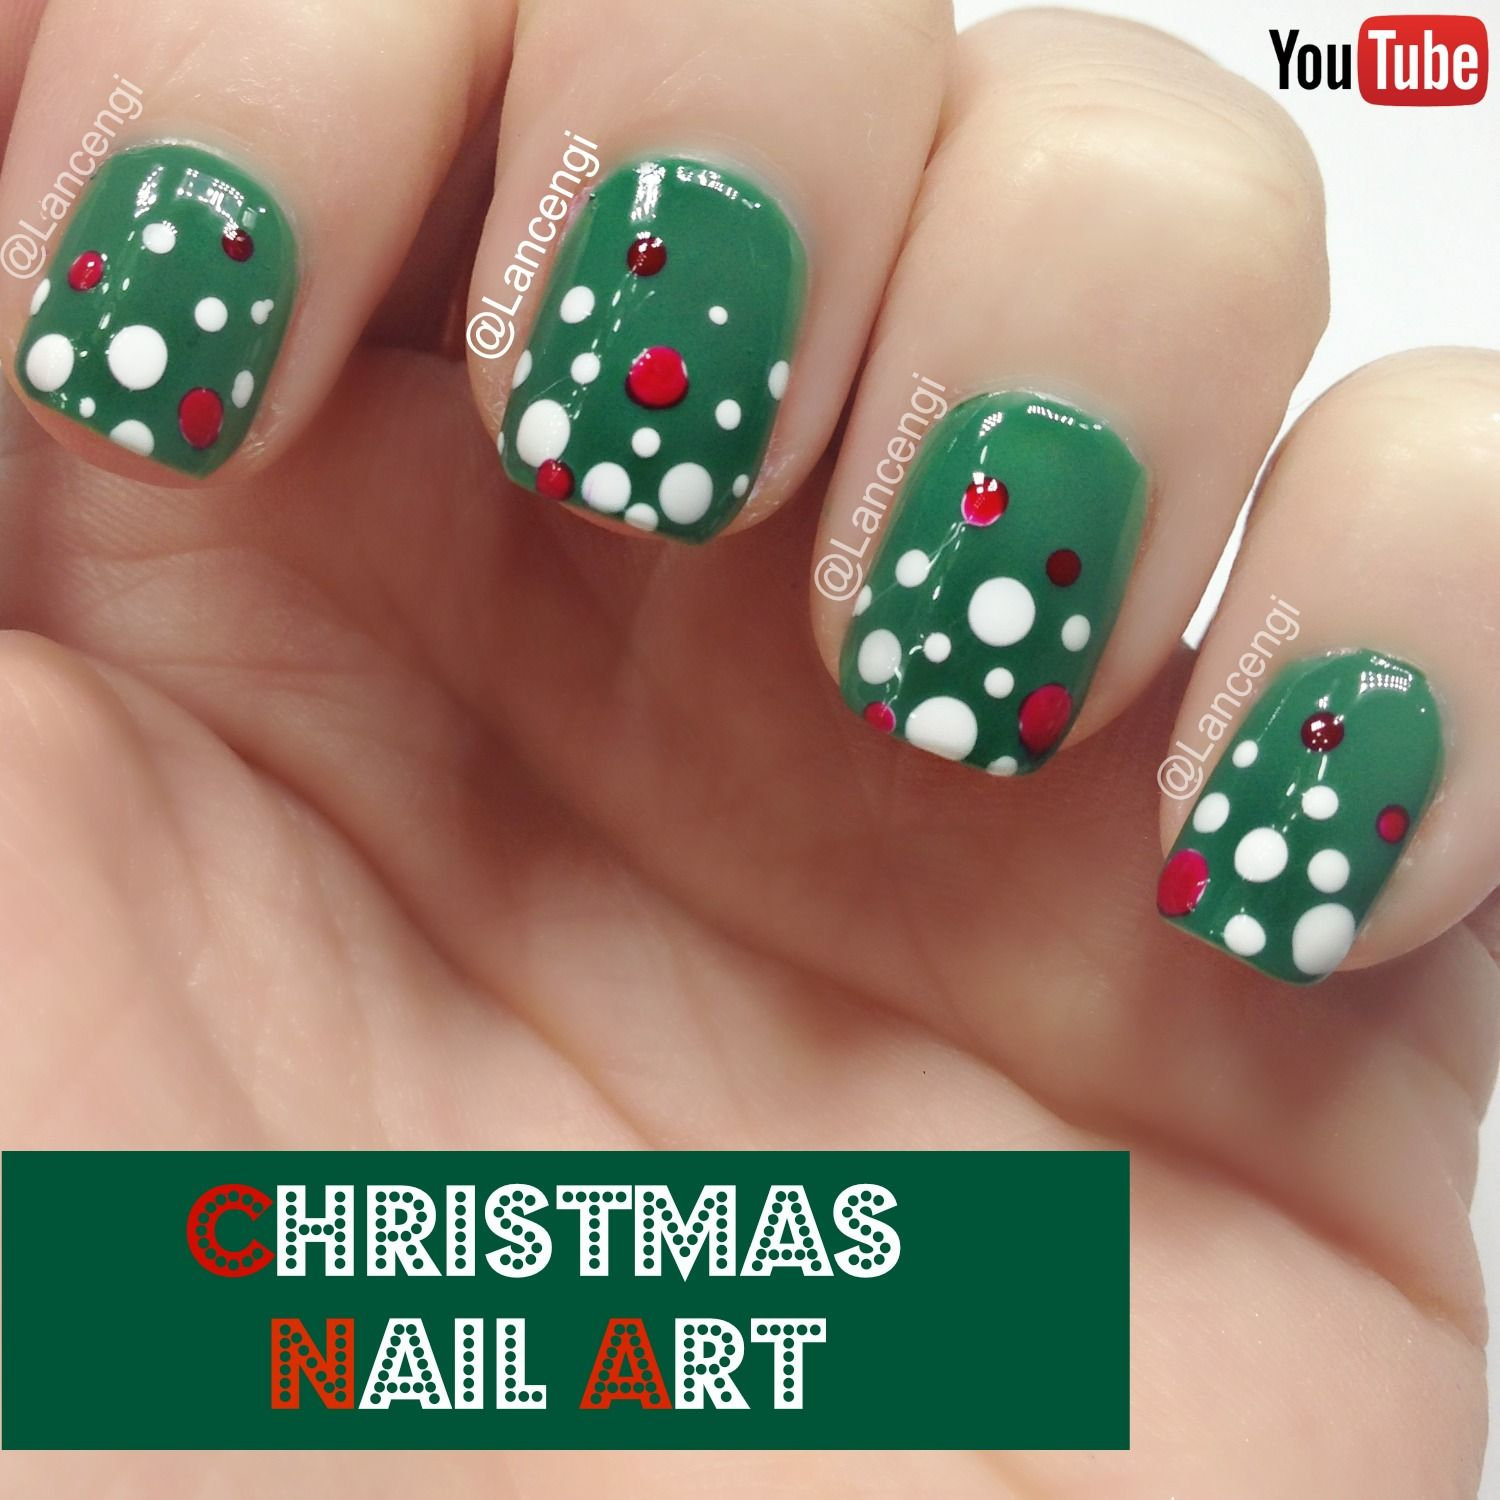 Simple Nail Art For Short Nails: Easy Christmas Nail Art For Short Nails